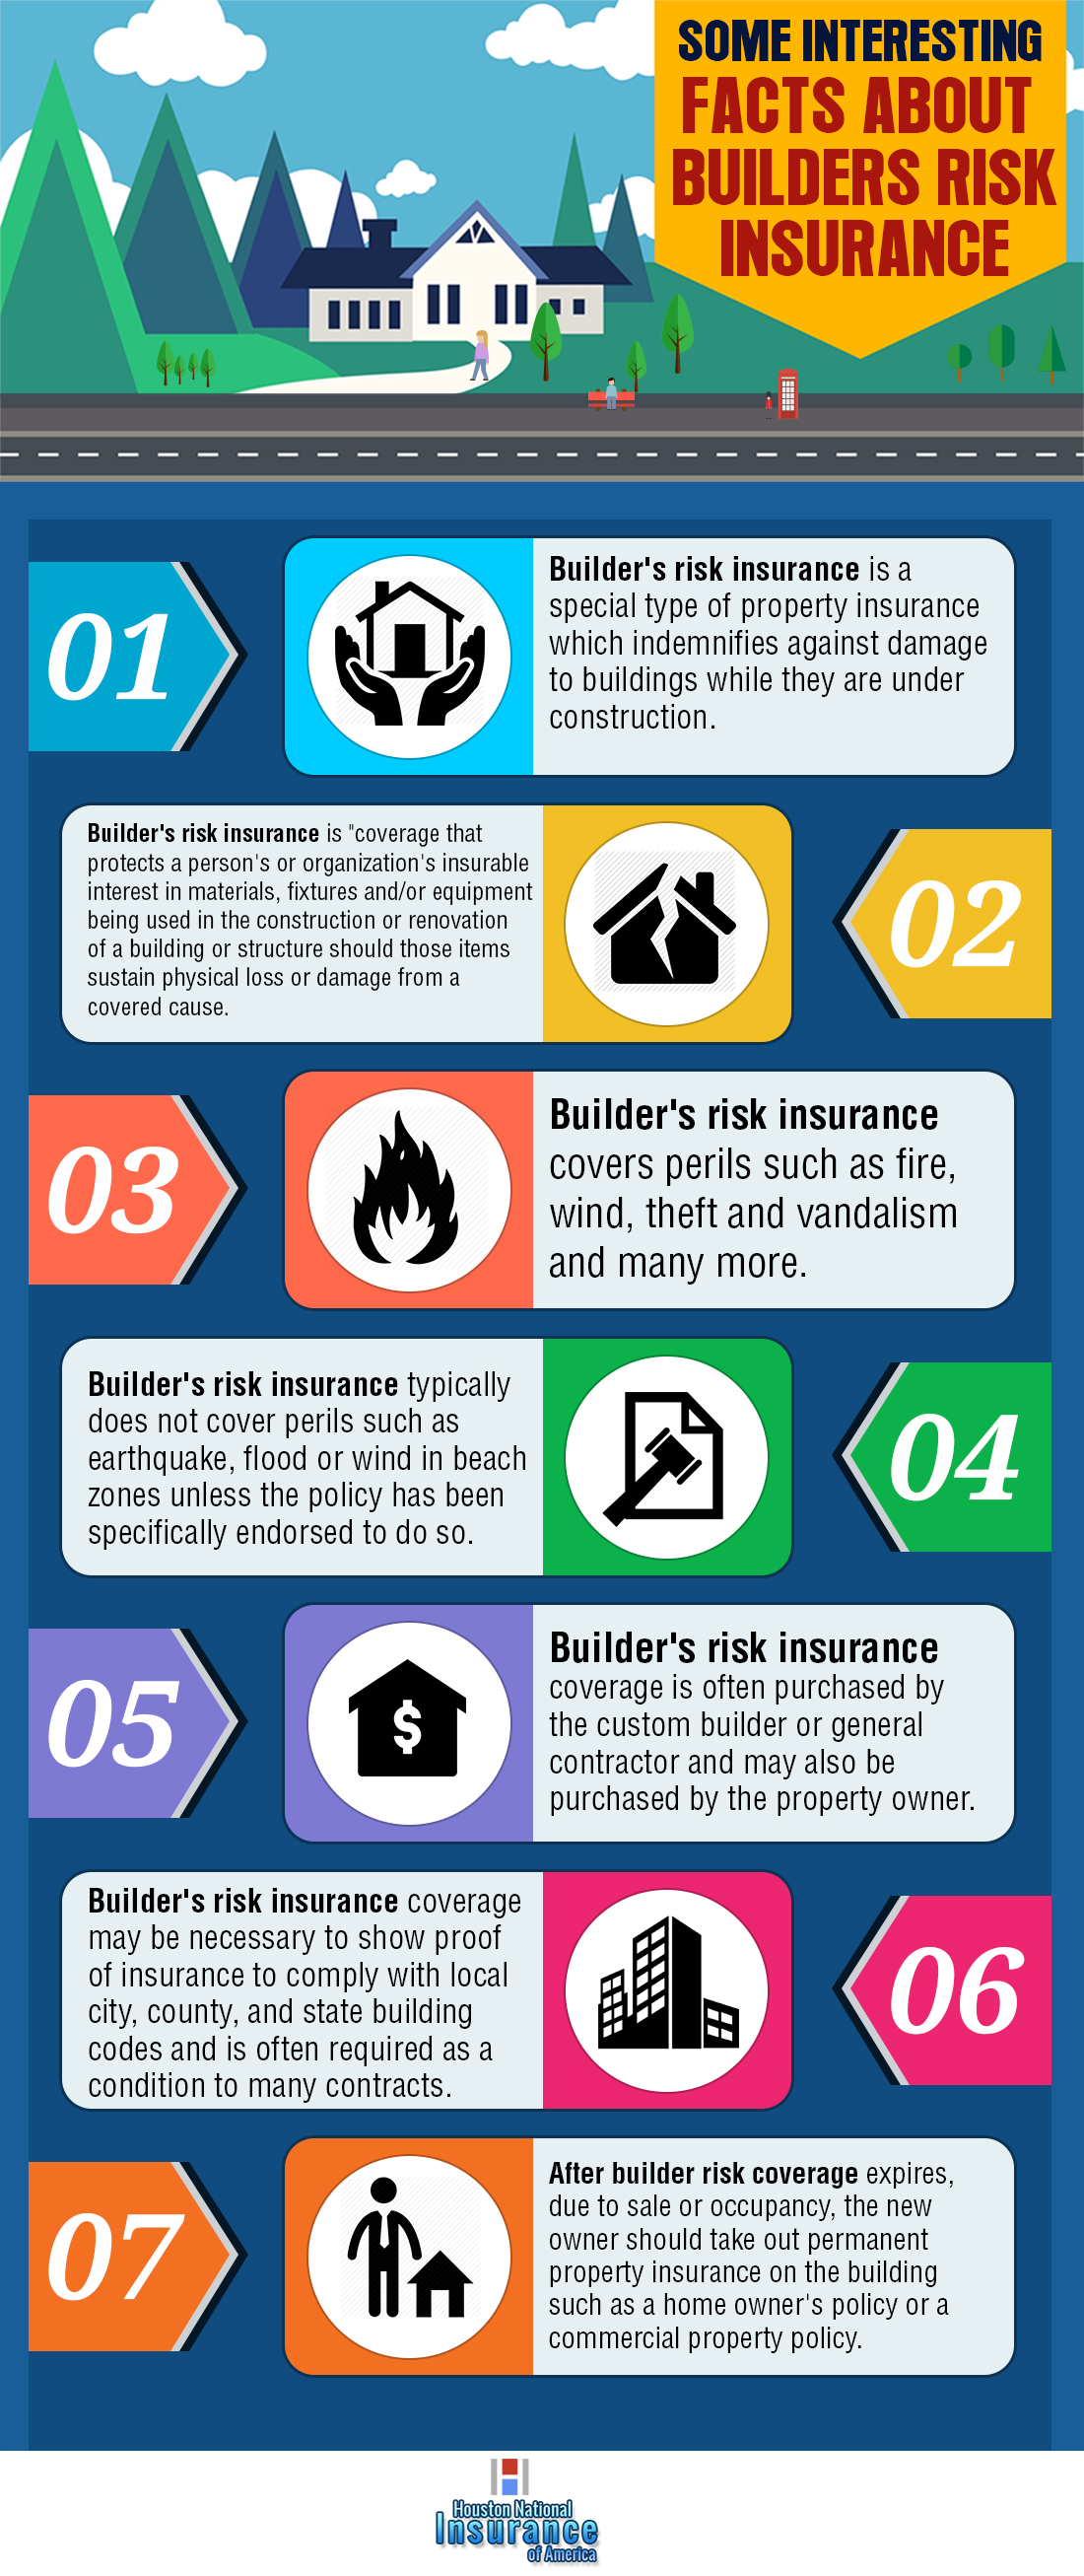 top interesting facts about builders risk insurance houston